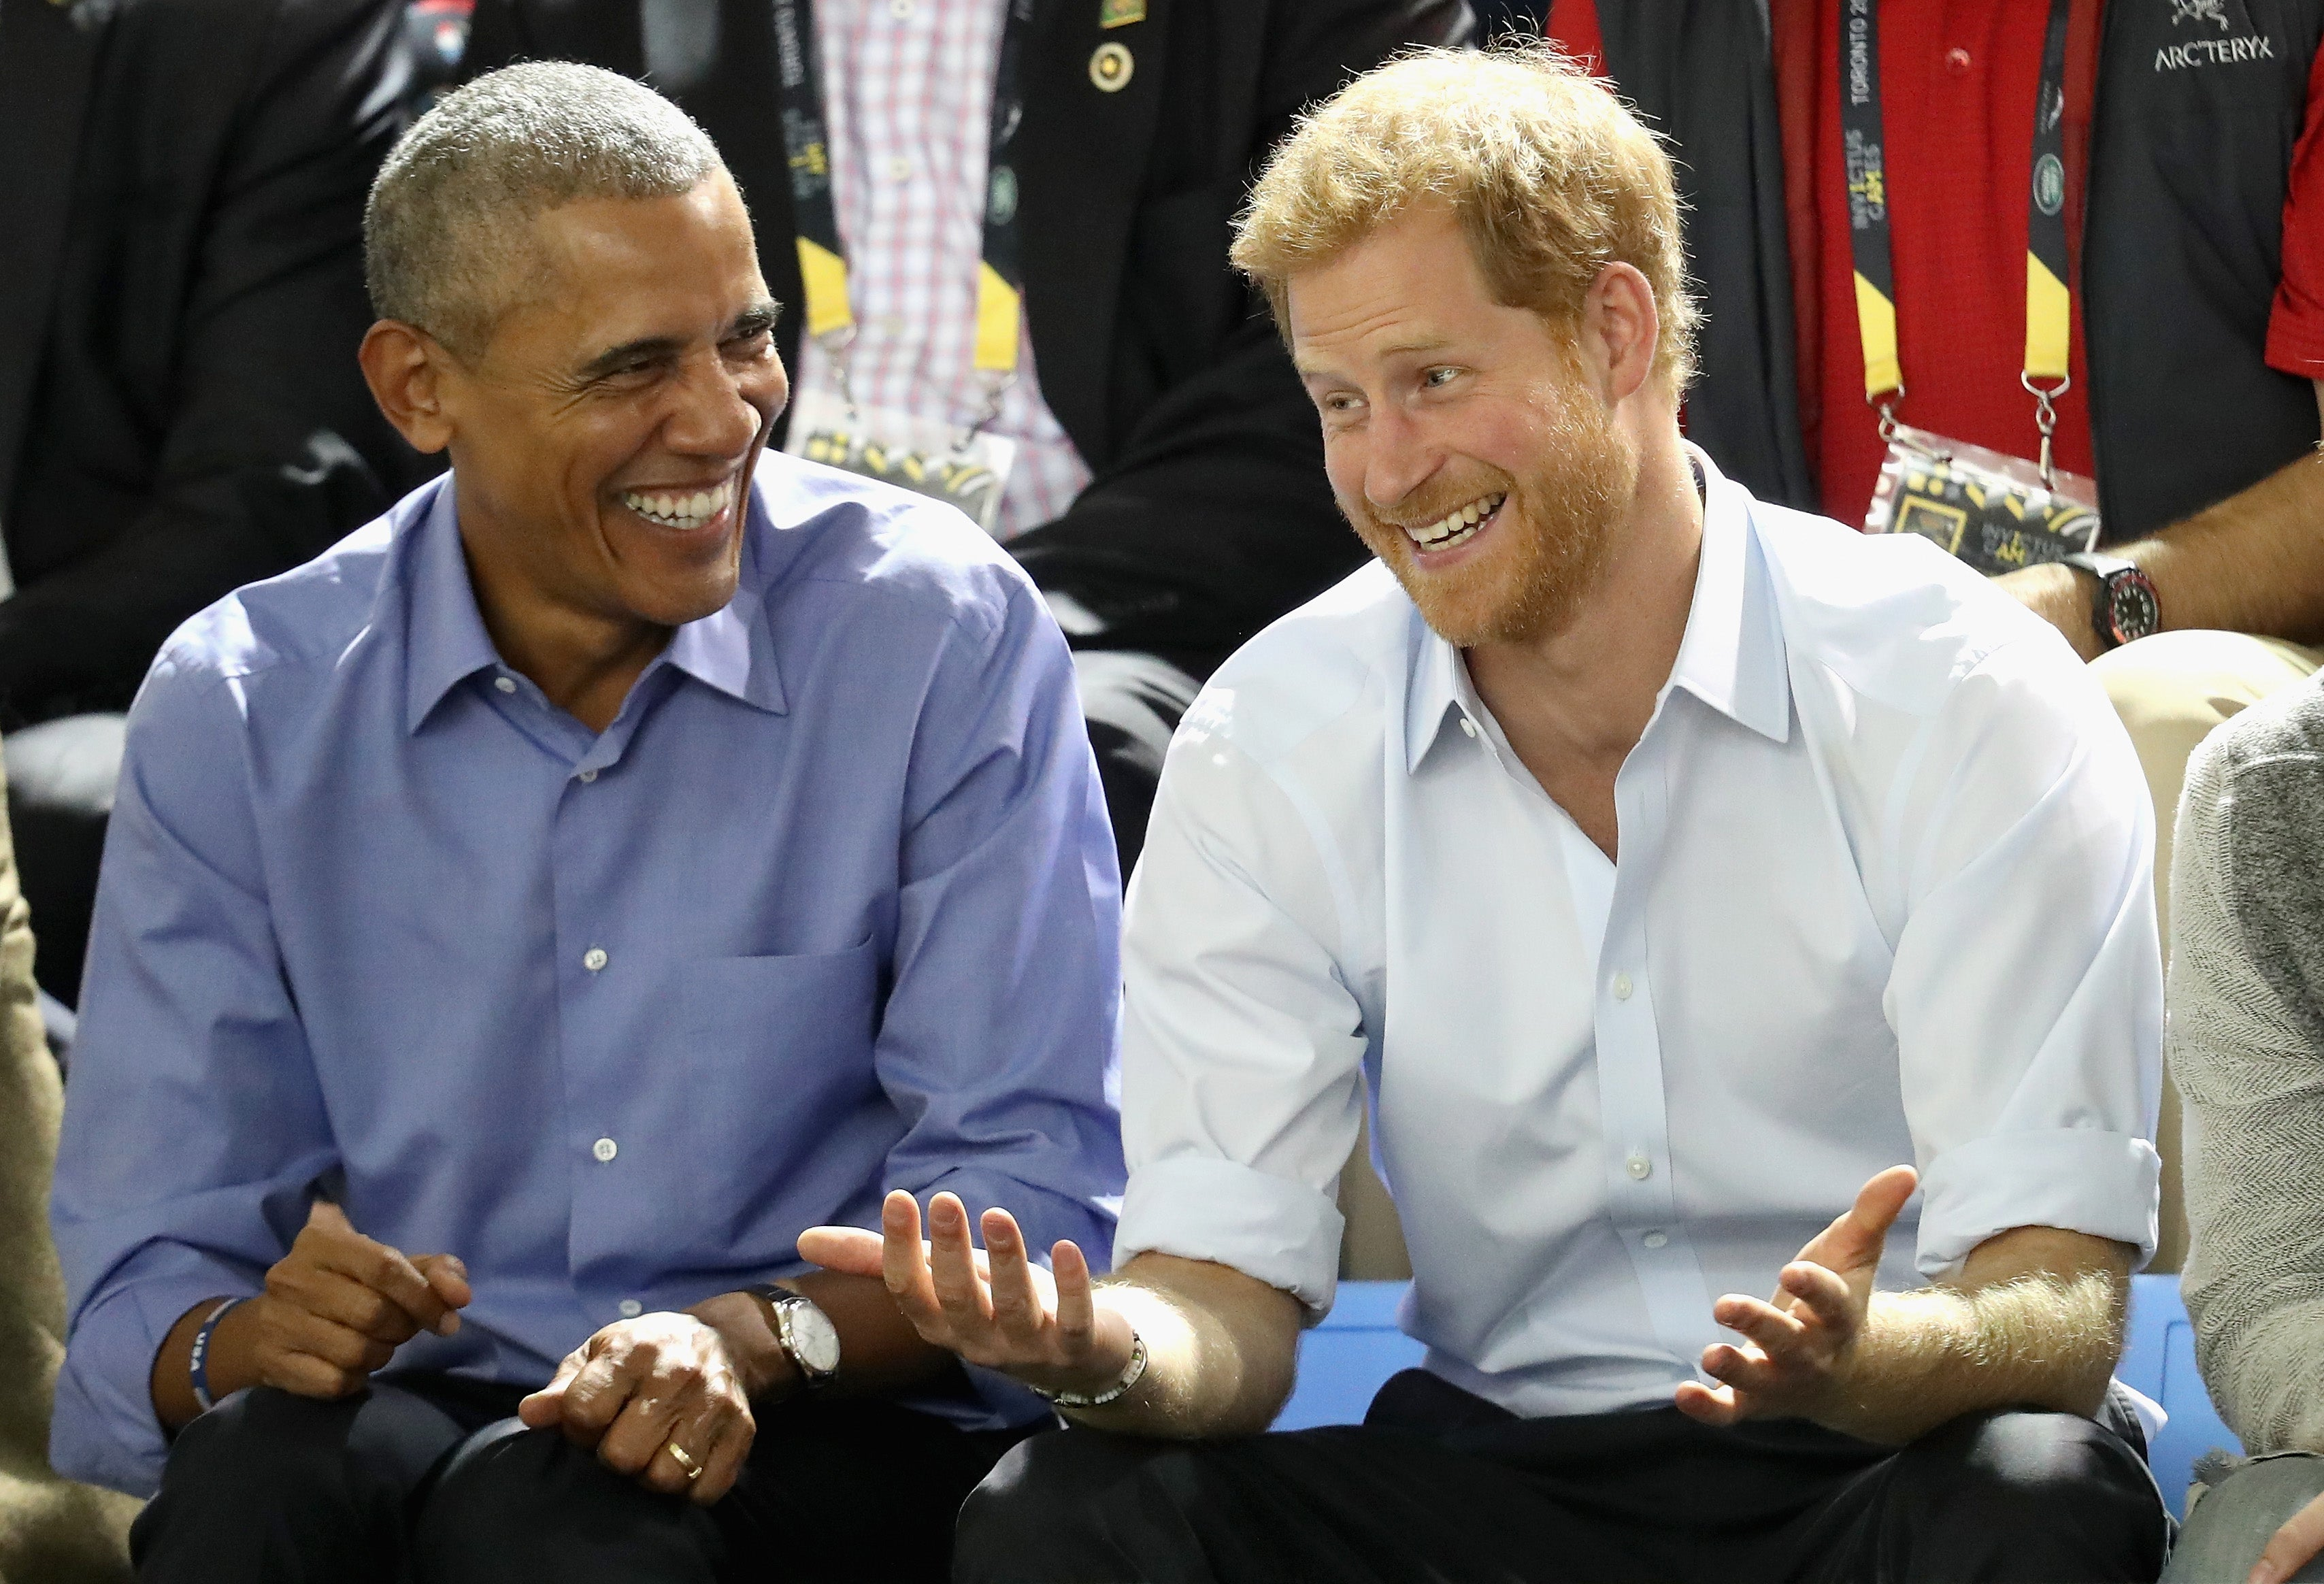 Inviting The ObamasTo Prince HarryAnd Meghan Markle's Wedding Could Cause A Crisis. But So What?